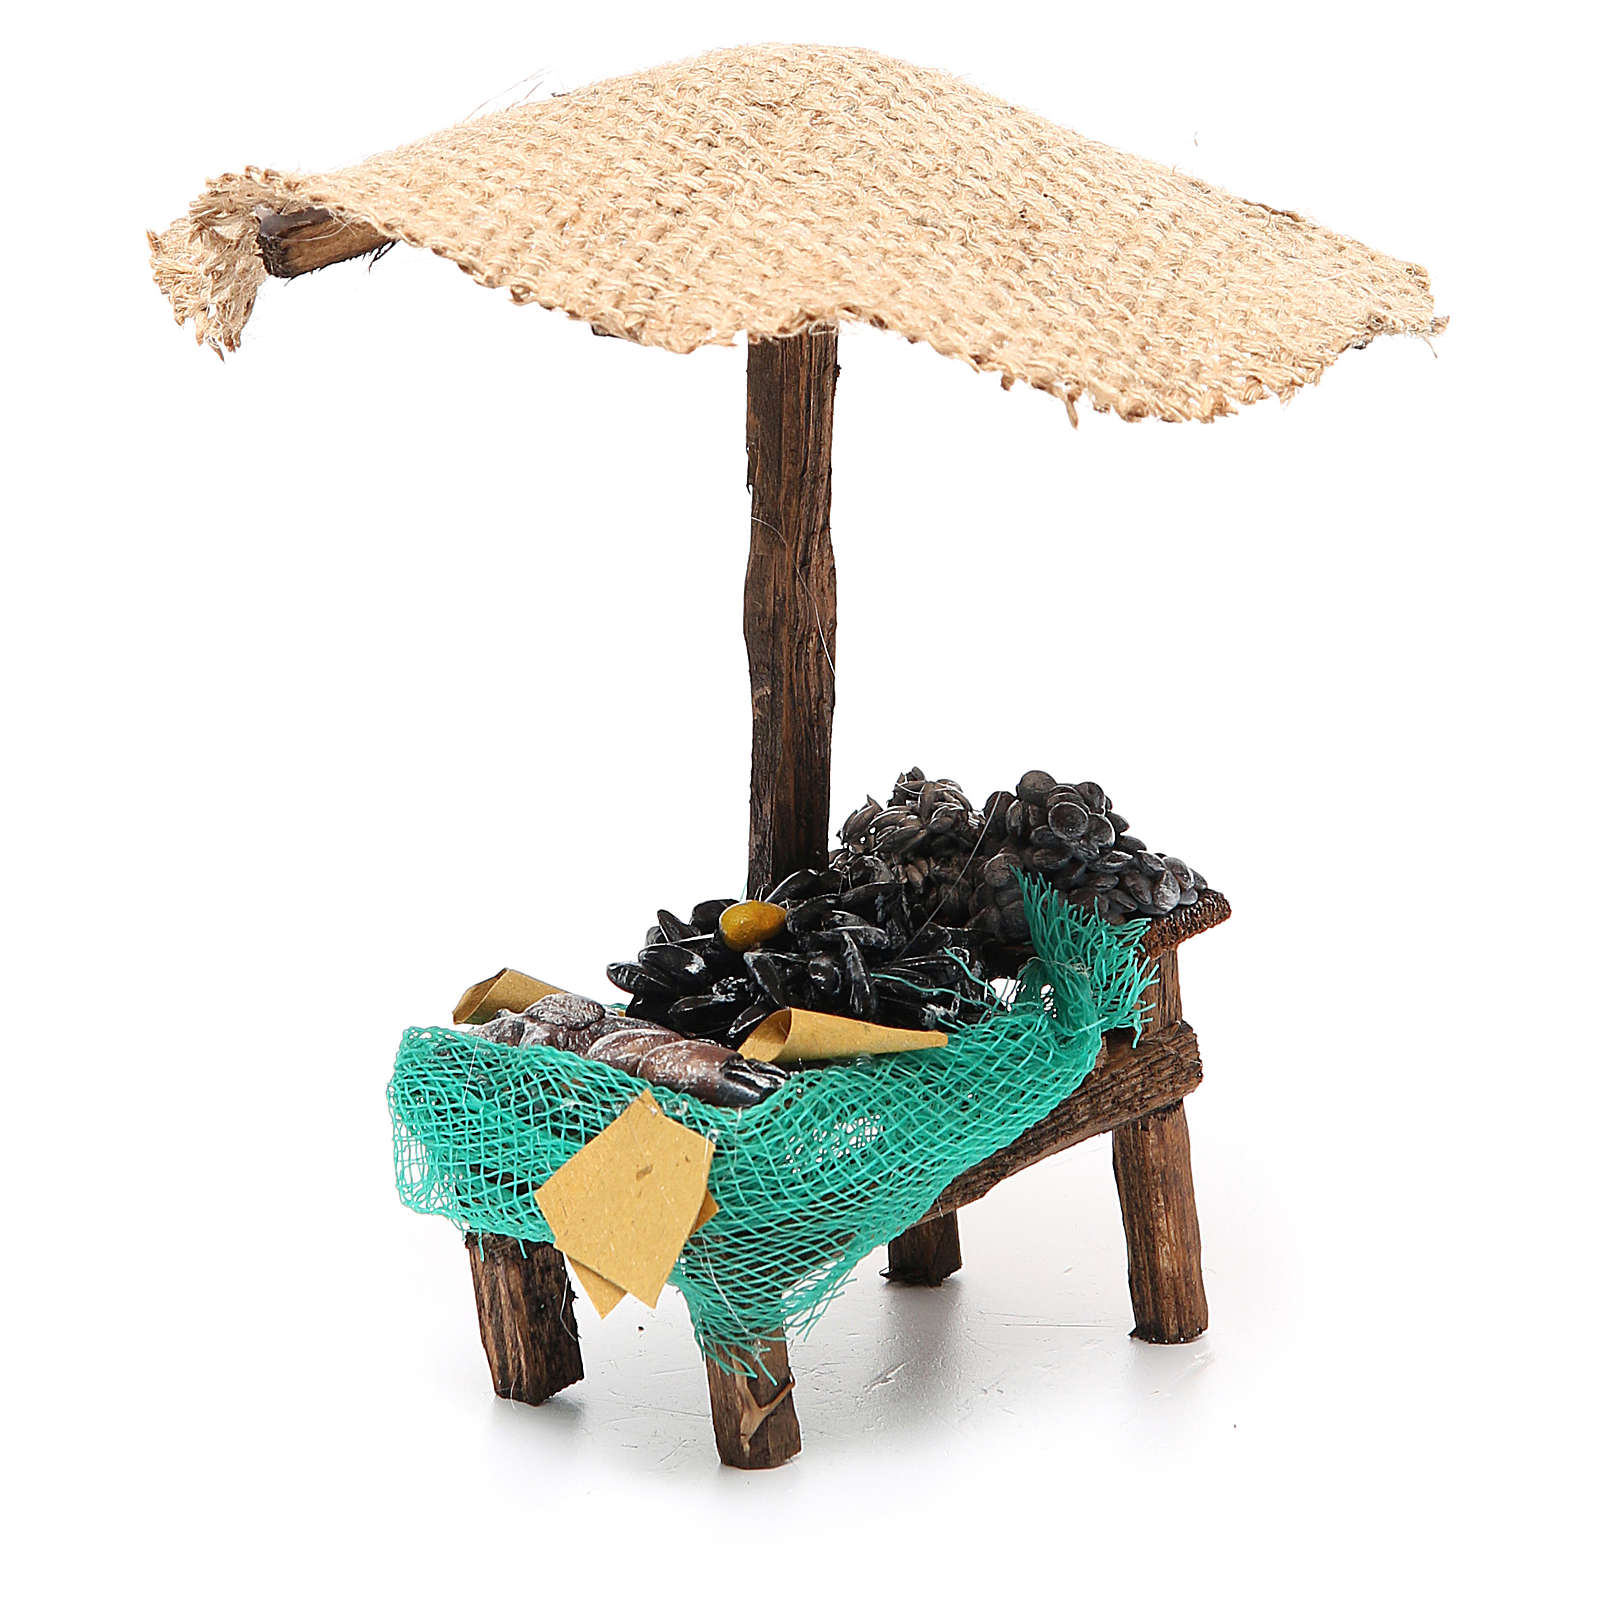 Workshop nativity with beach umbrella, mussels and clams 16x10x12cm 4